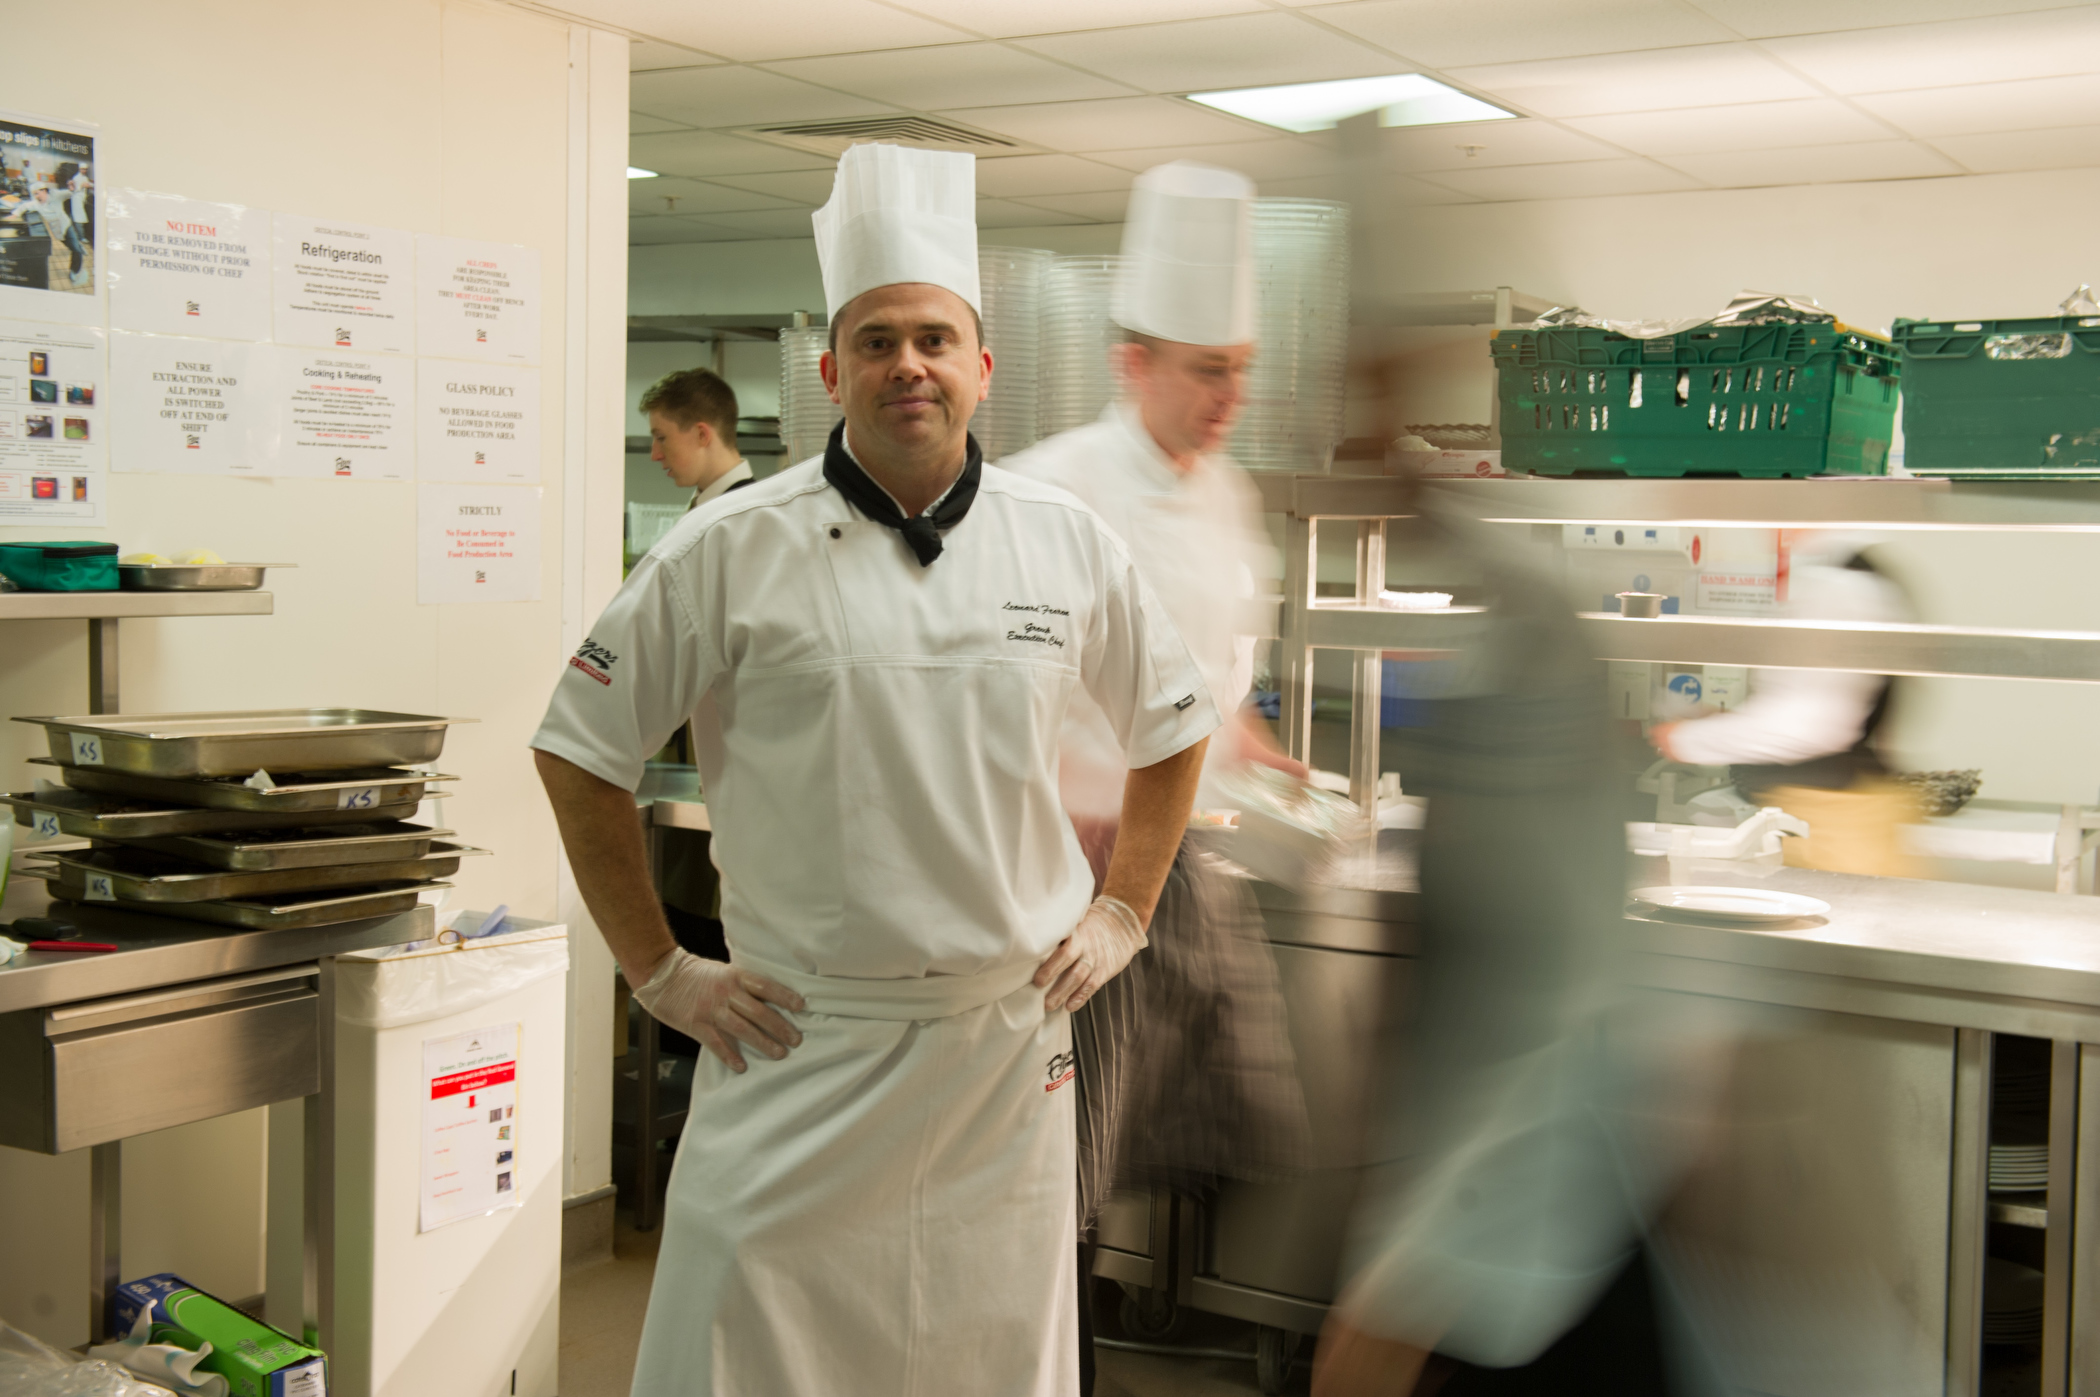 Fitzers catering company and Croke Park Executive Chef Len Fearon. (Photo: Barry Cronin)